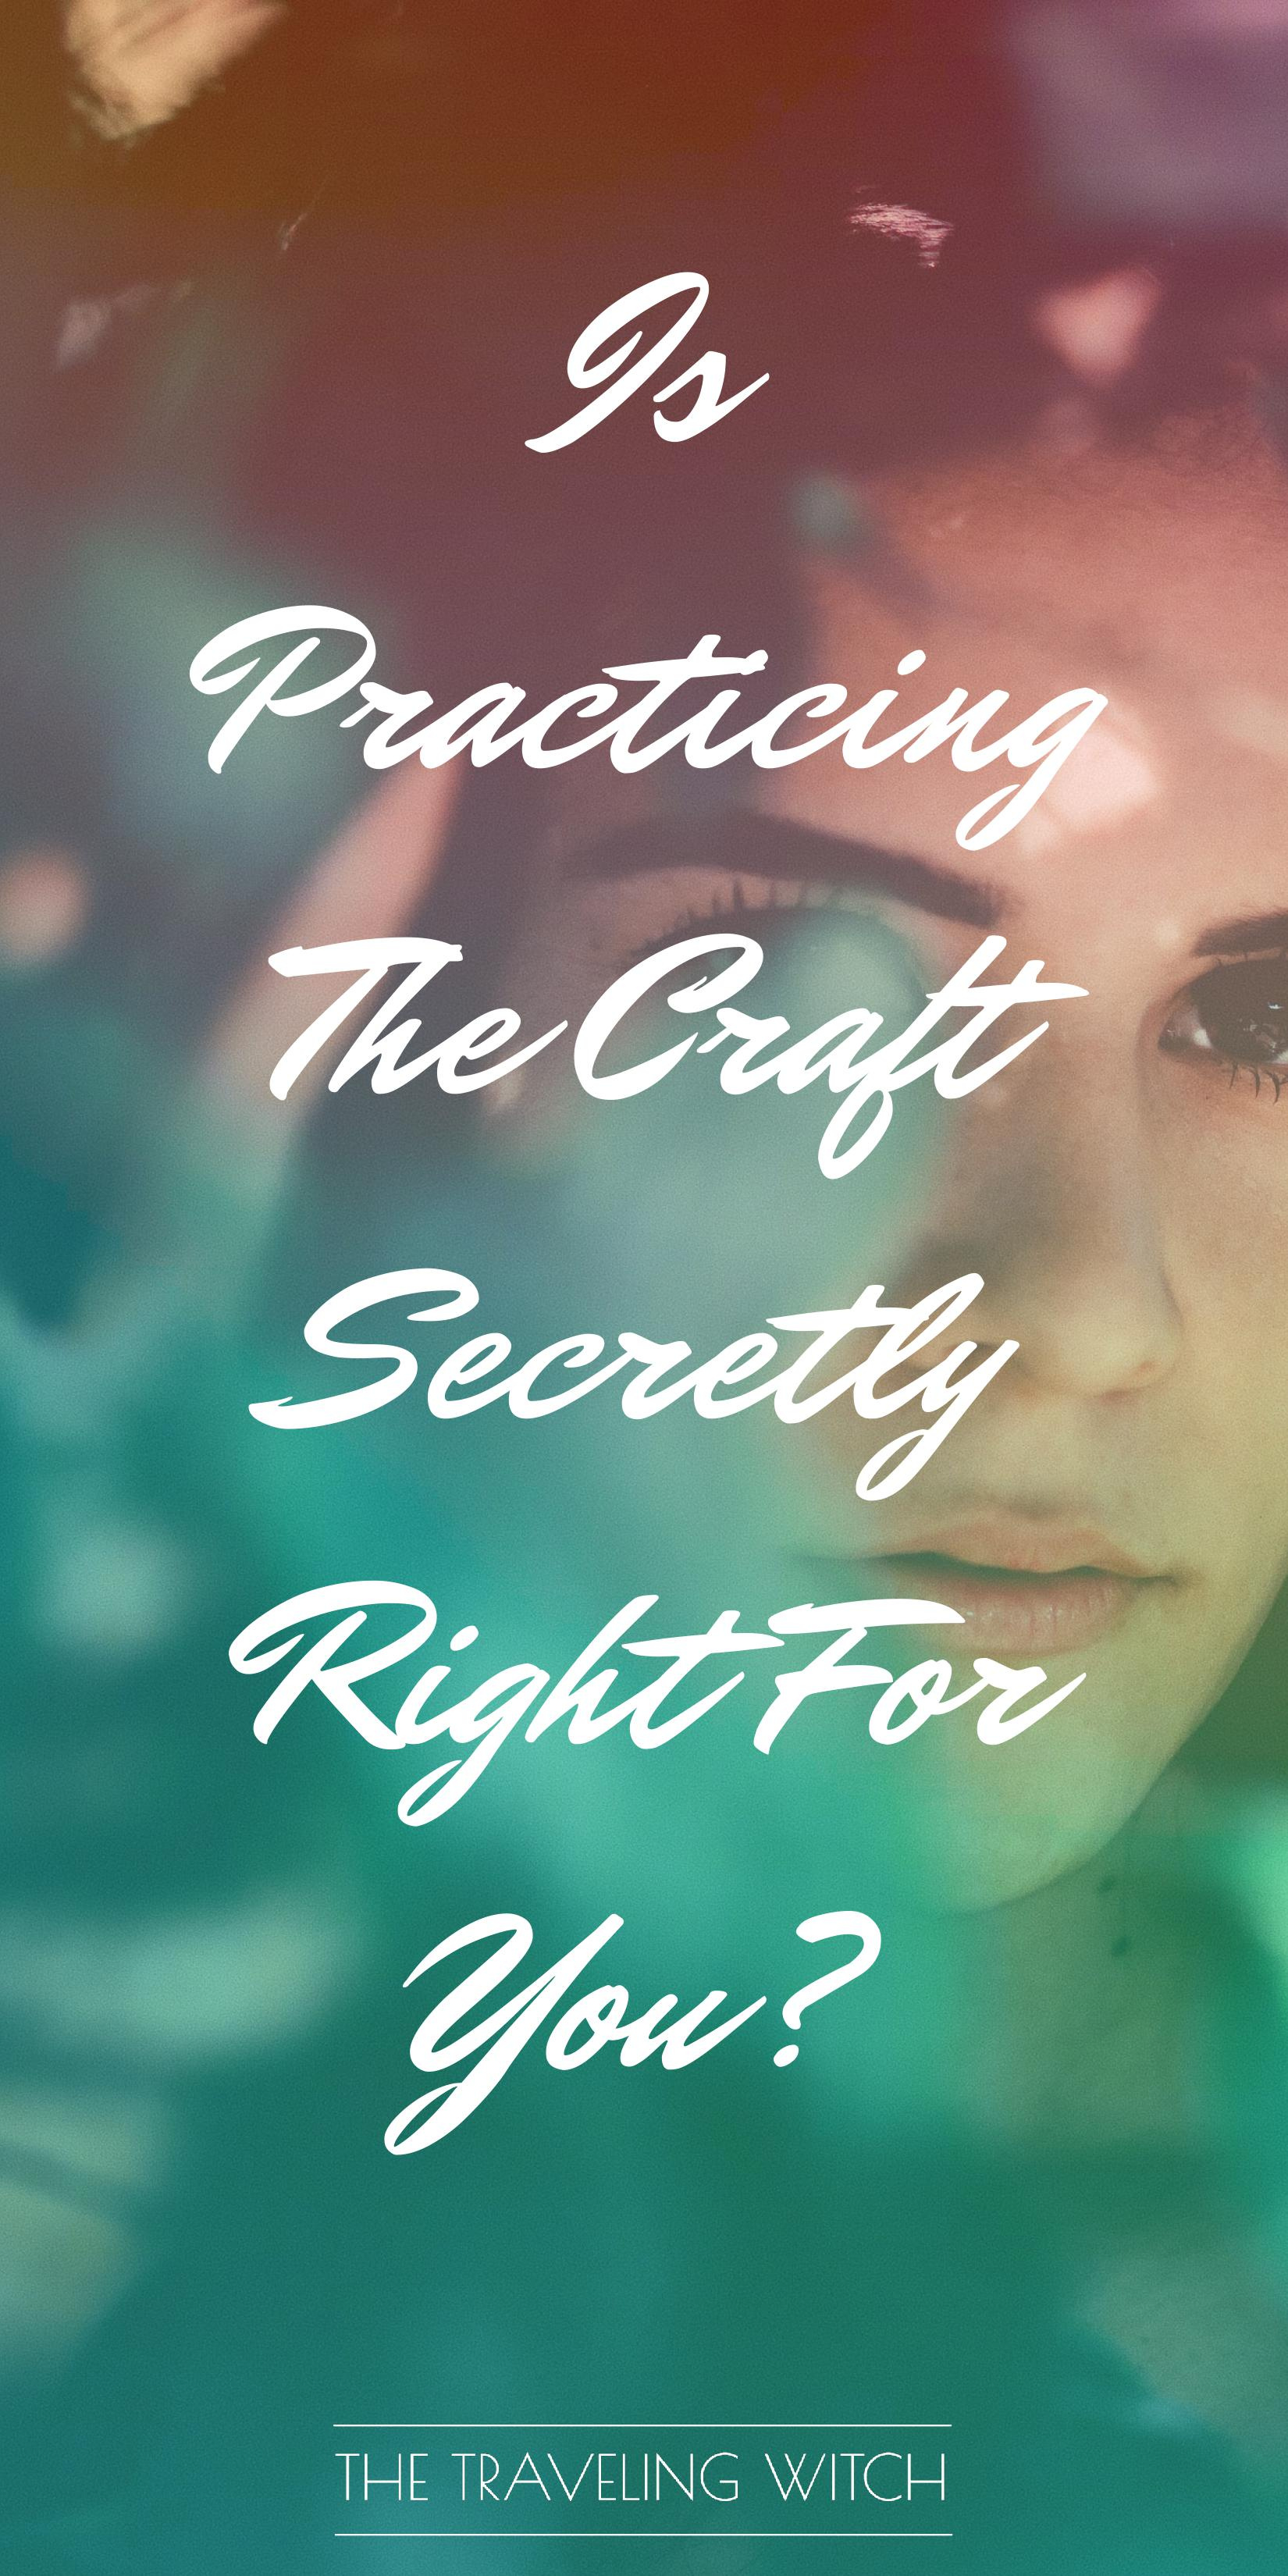 Is Practicing The Craft Secretly Right For You? // Witchcraft // Magic // The Traveling Witch